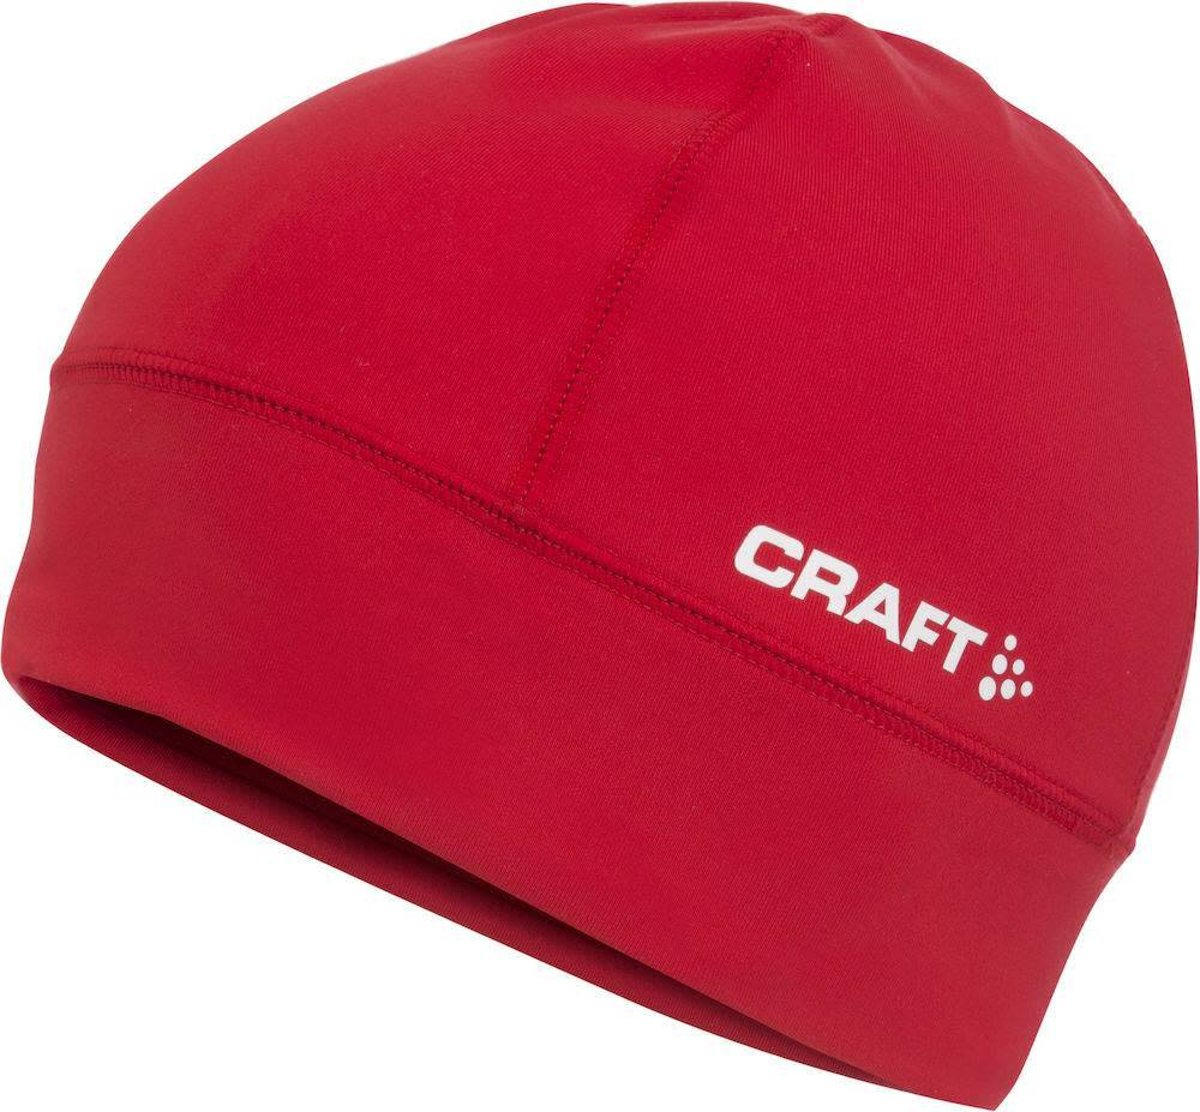 Craft craft light thermal hat - Muts - Unisex - Red - S/M thumbnail